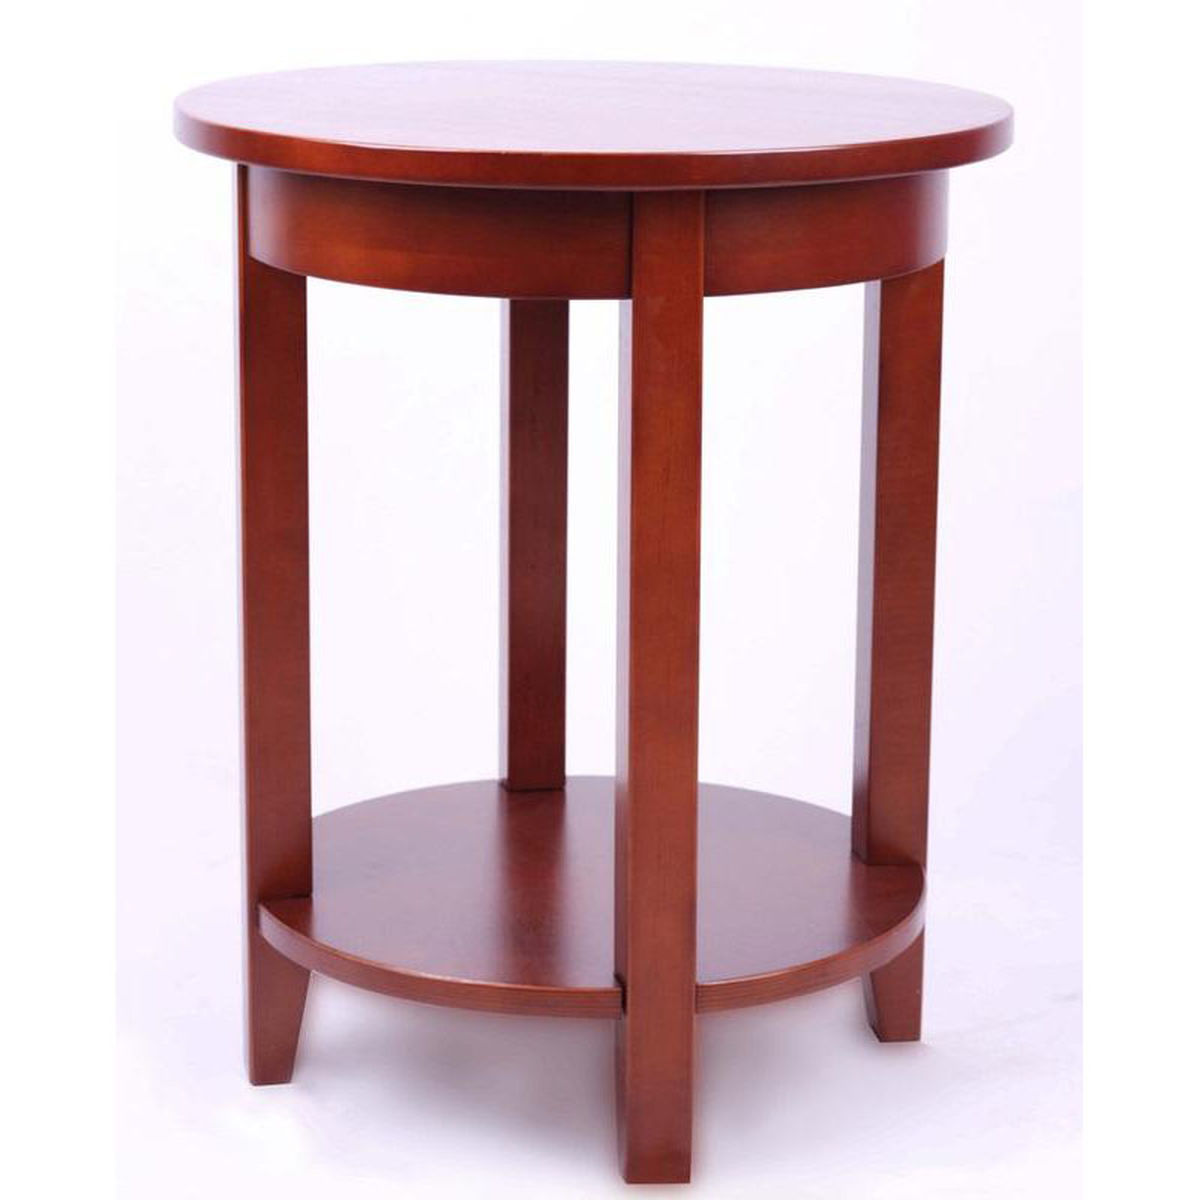 cherry round accent table bizchair bolton furniture bol main with storage our shaker cottage wooden diameter shelf acrylic clear side unfinished bookcases small width console